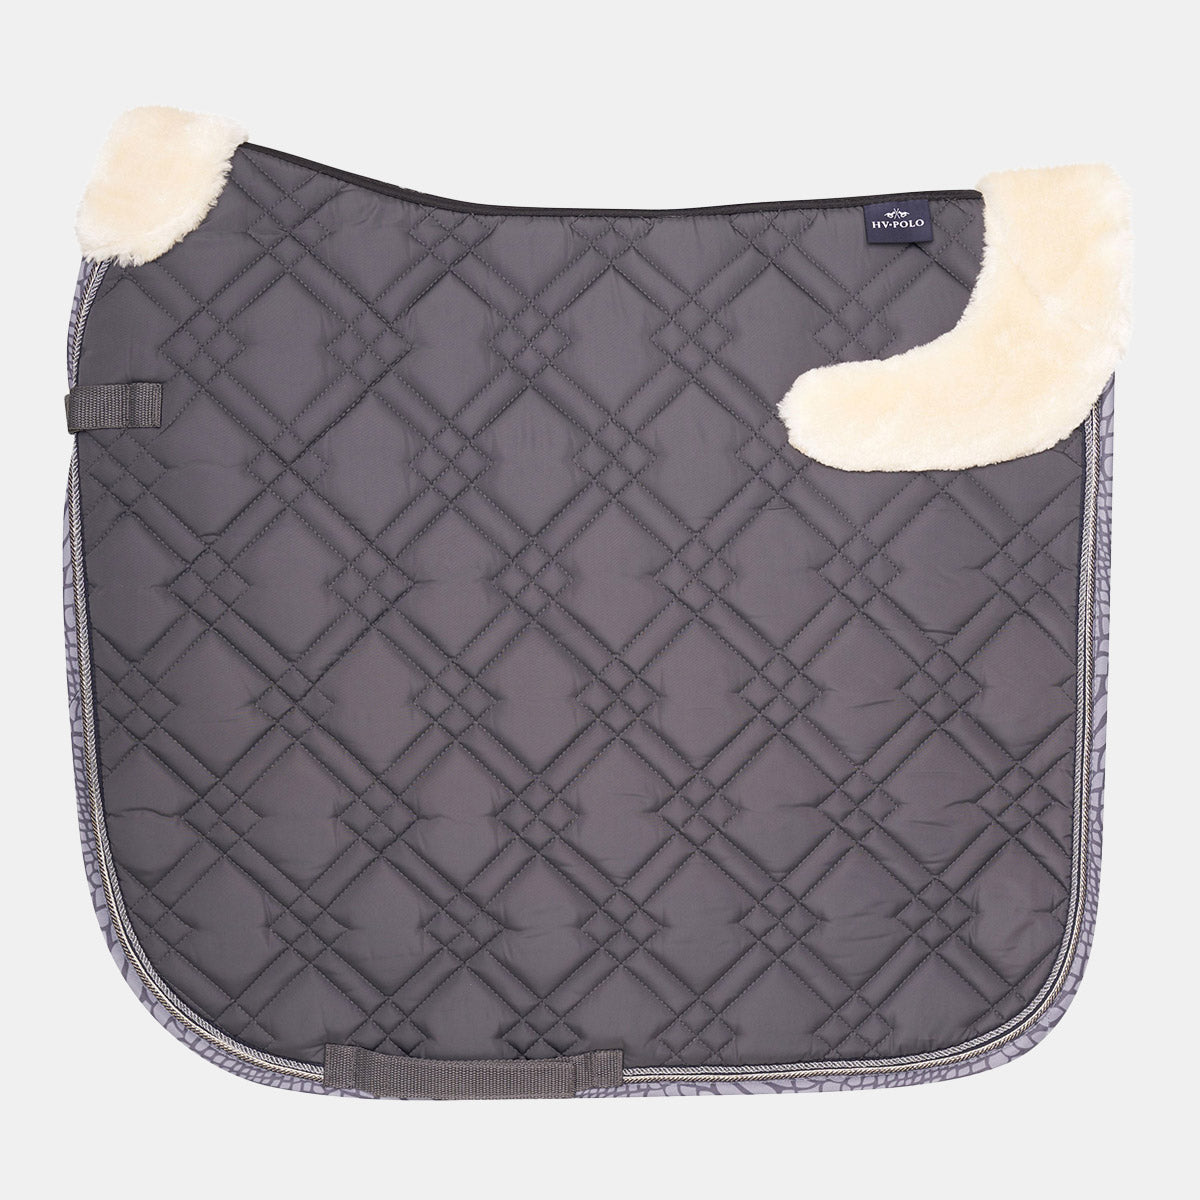 HV Polo Randy Dressage Saddlepad - Cool Grey